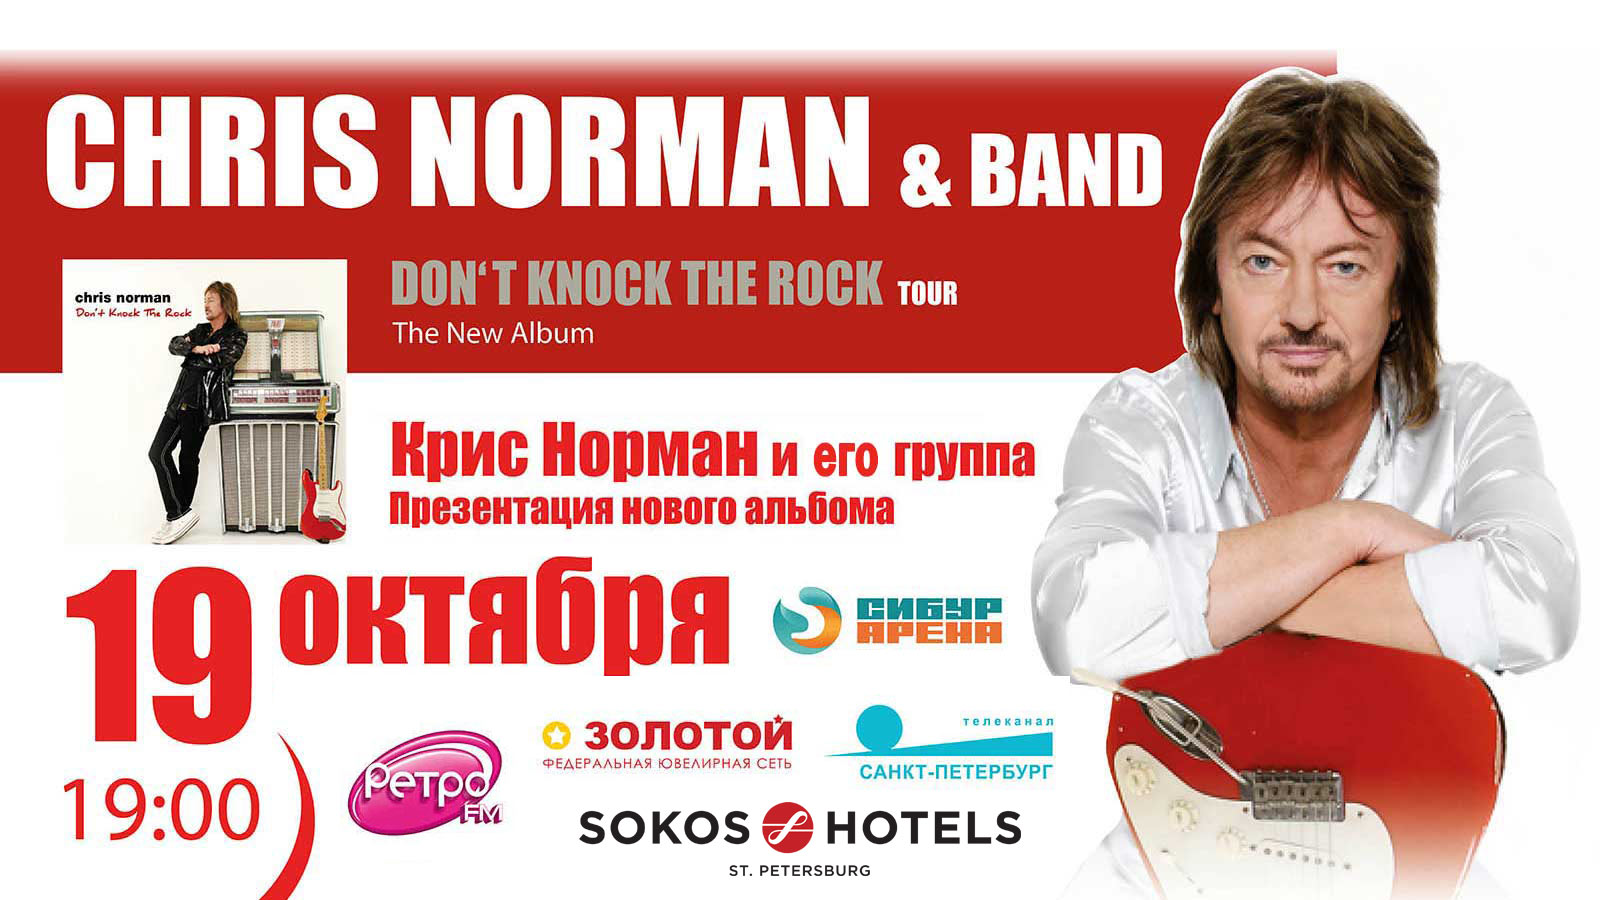 Chris NORMAN, Санкт-Петербург